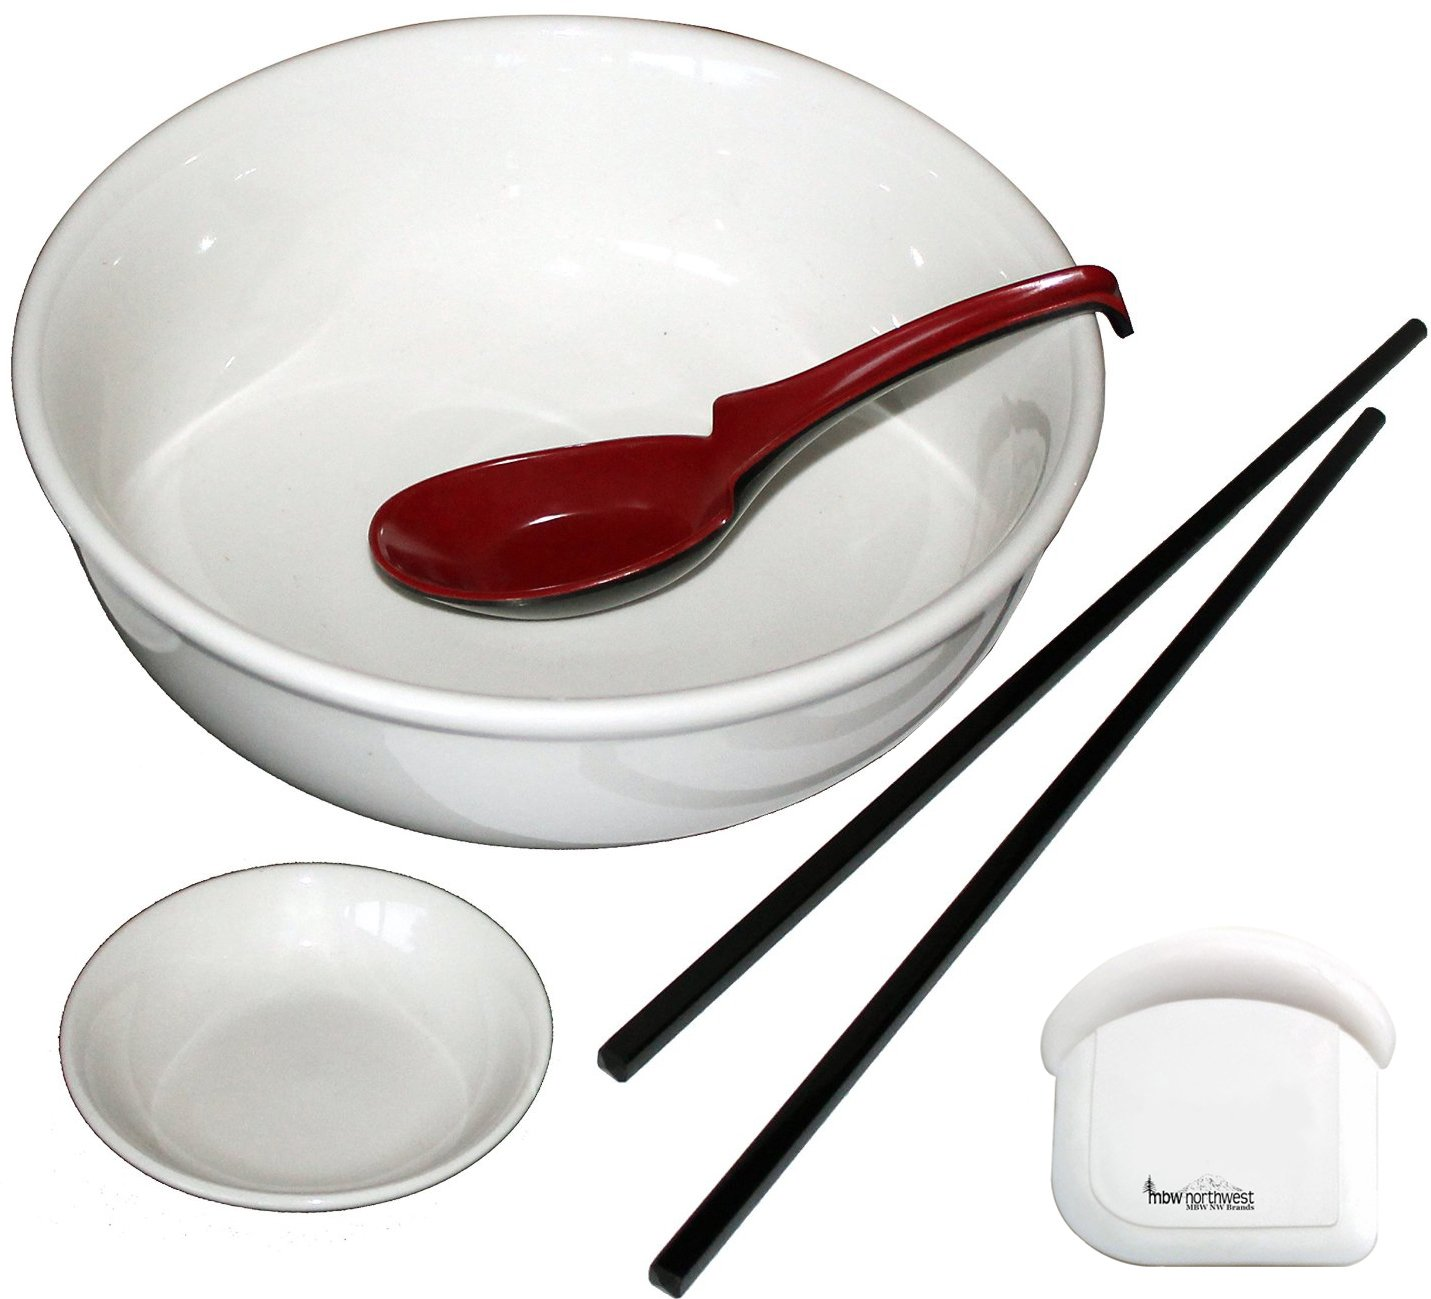 Cameo Ceramic Pho Soup Bowls with Pan Scraper, 7.25 Inch, 38 Ounce, Set of 2, White Ivory MBW NW Brands 201-74